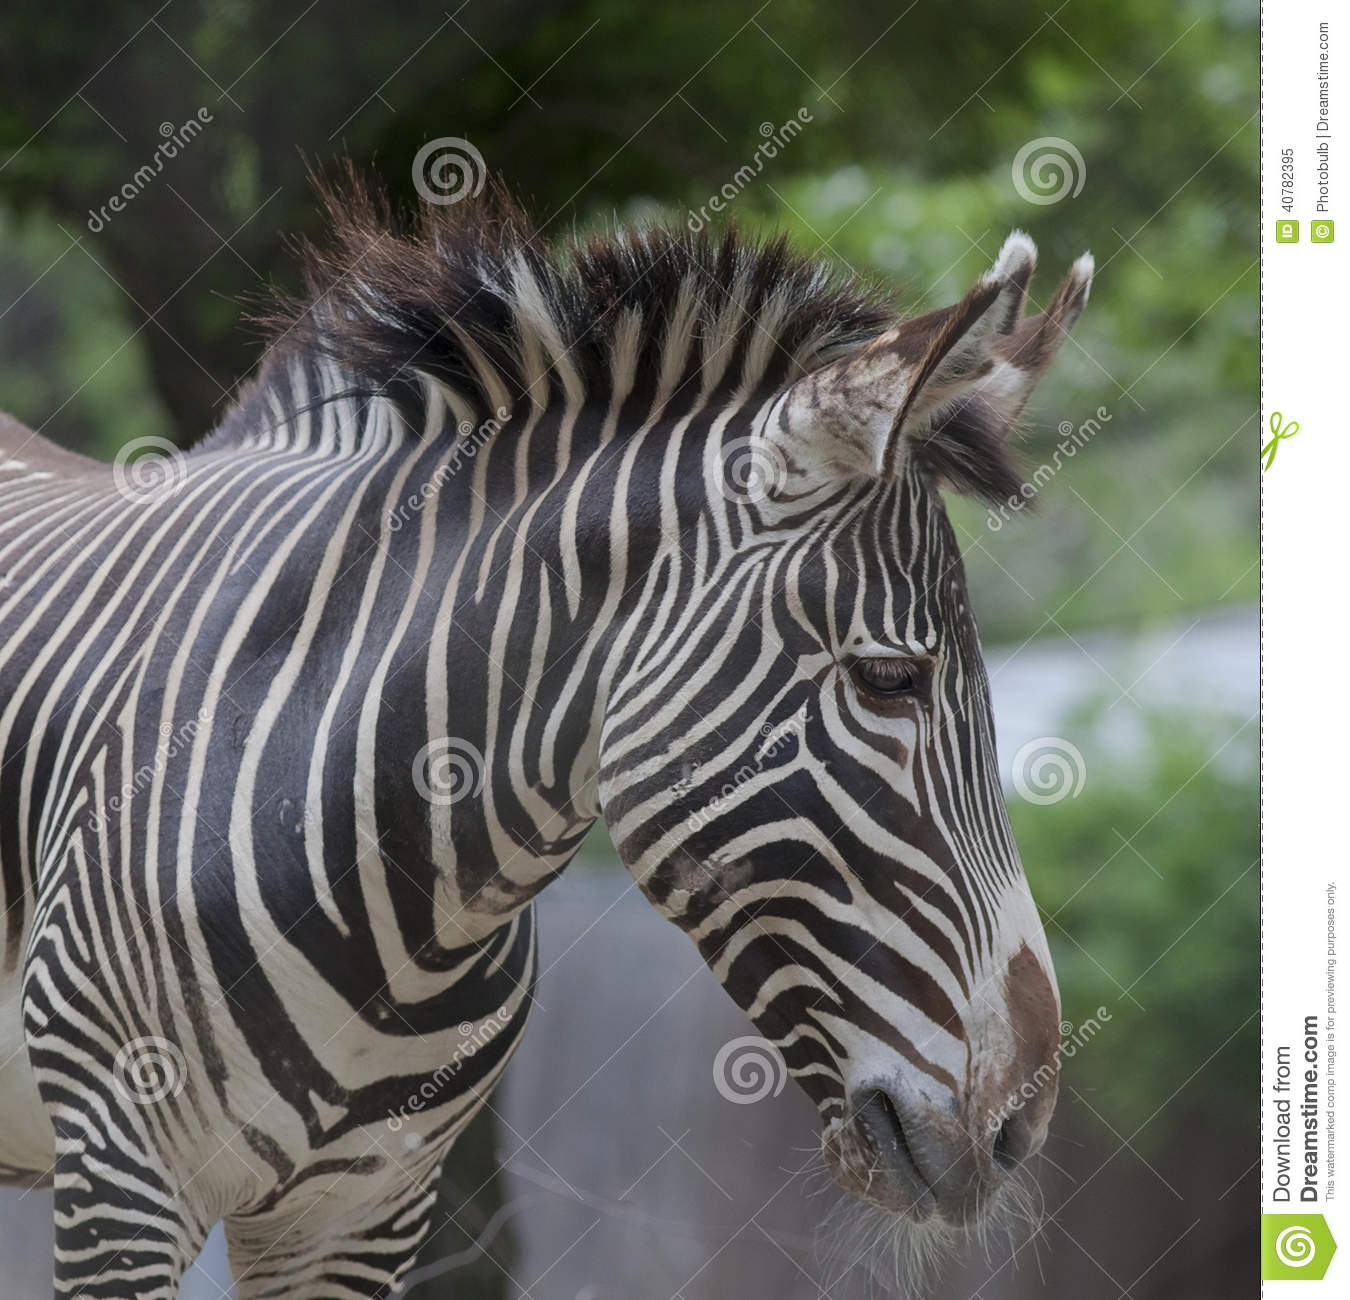 Vertical Stripes of a Zebra at the National Zoo